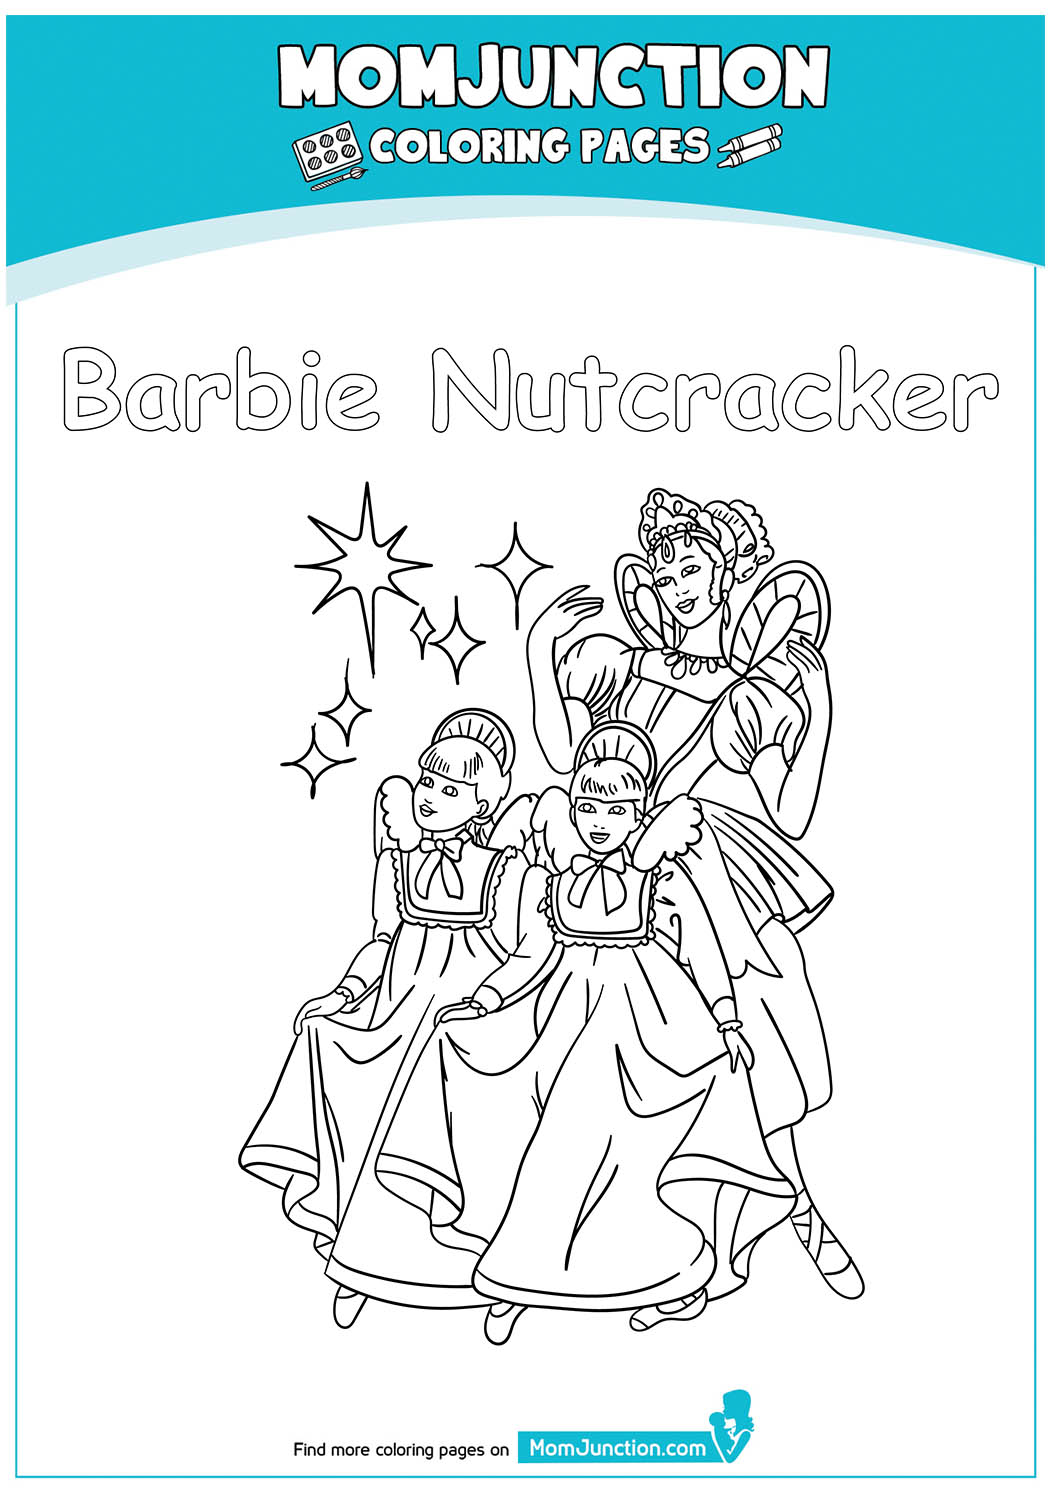 Barbie-Nutcracker-Colouring-Pages-17